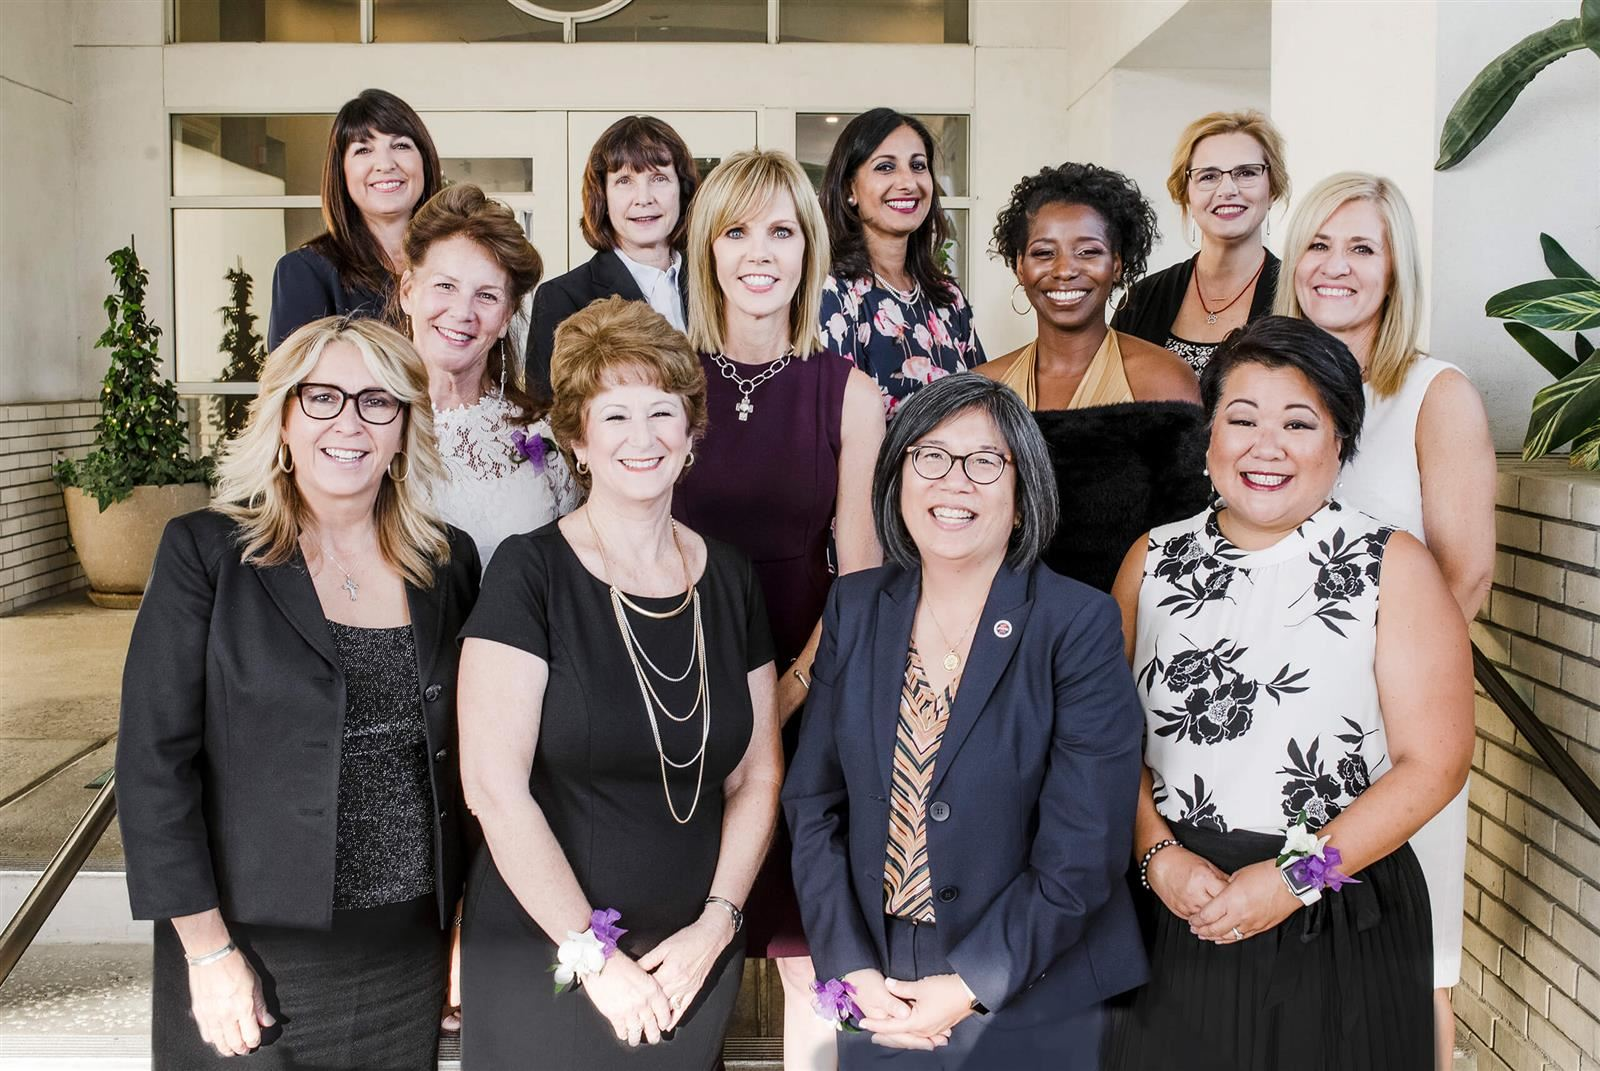 Asst.Superintendent Dr. Sidhu honored as one of Valley's top female professionals